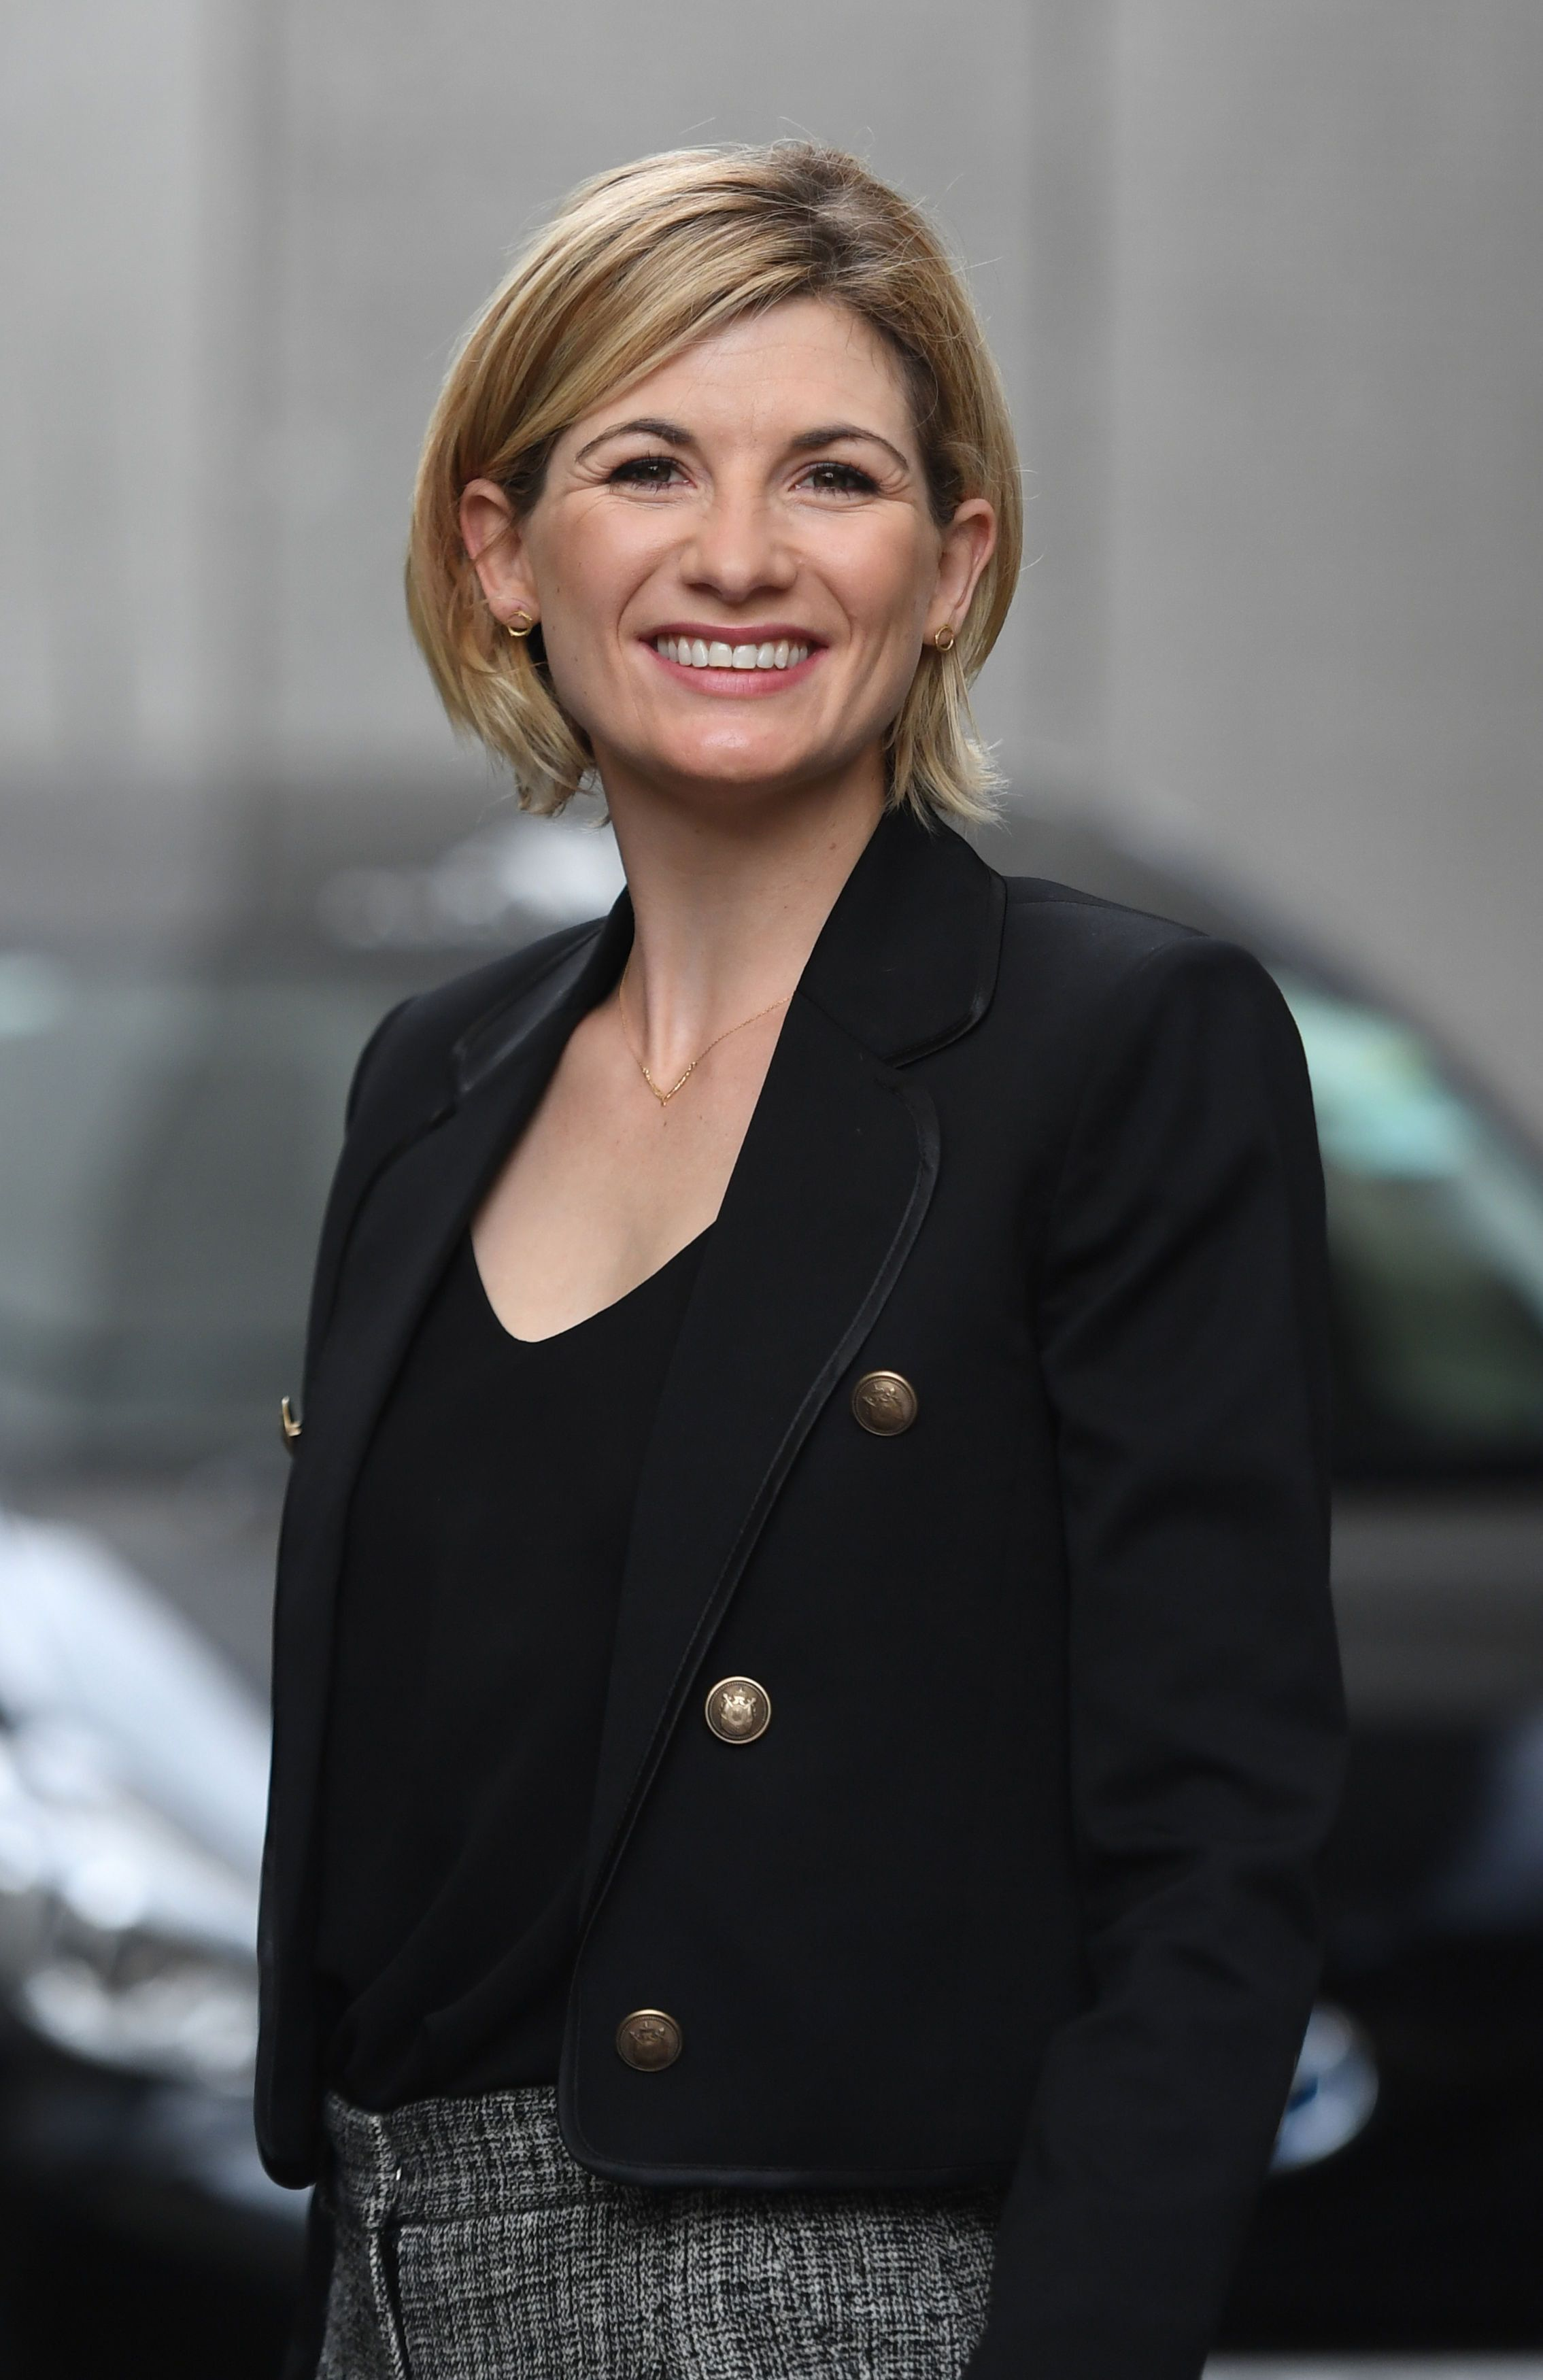 Jodie Whittaker Opens Up About 'Doctor Who' Audition Process, Revealing She Was Up Against Other Women